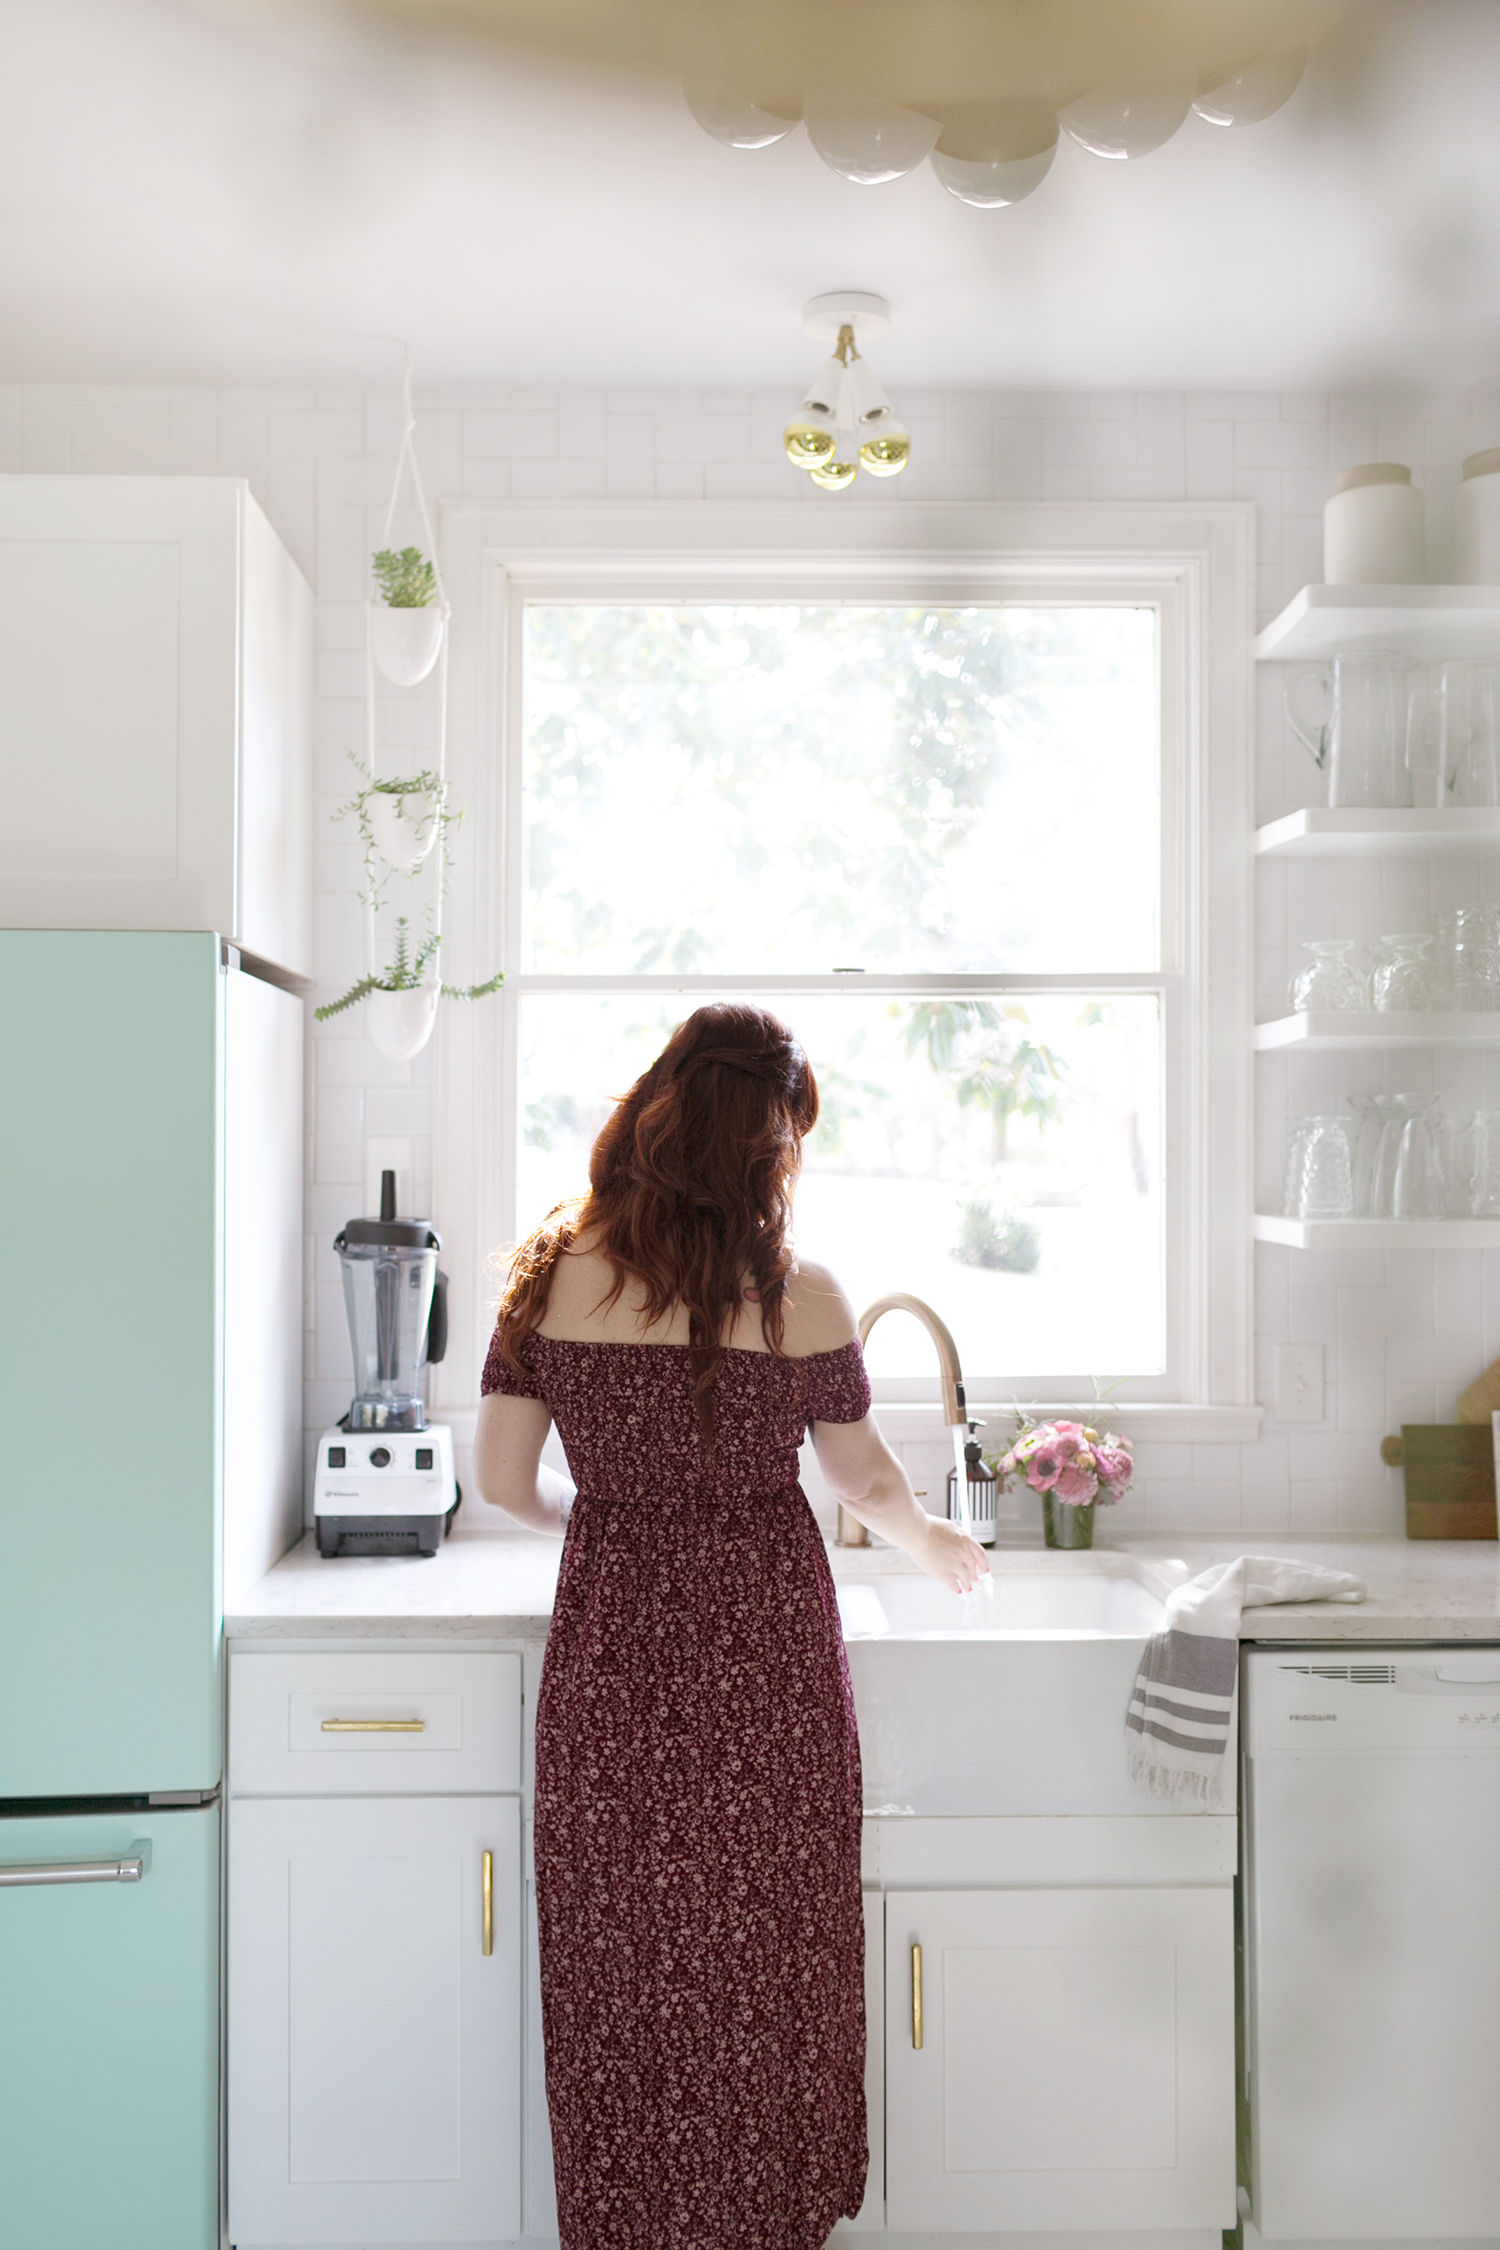 Elsie Larson's Kitchen Tour